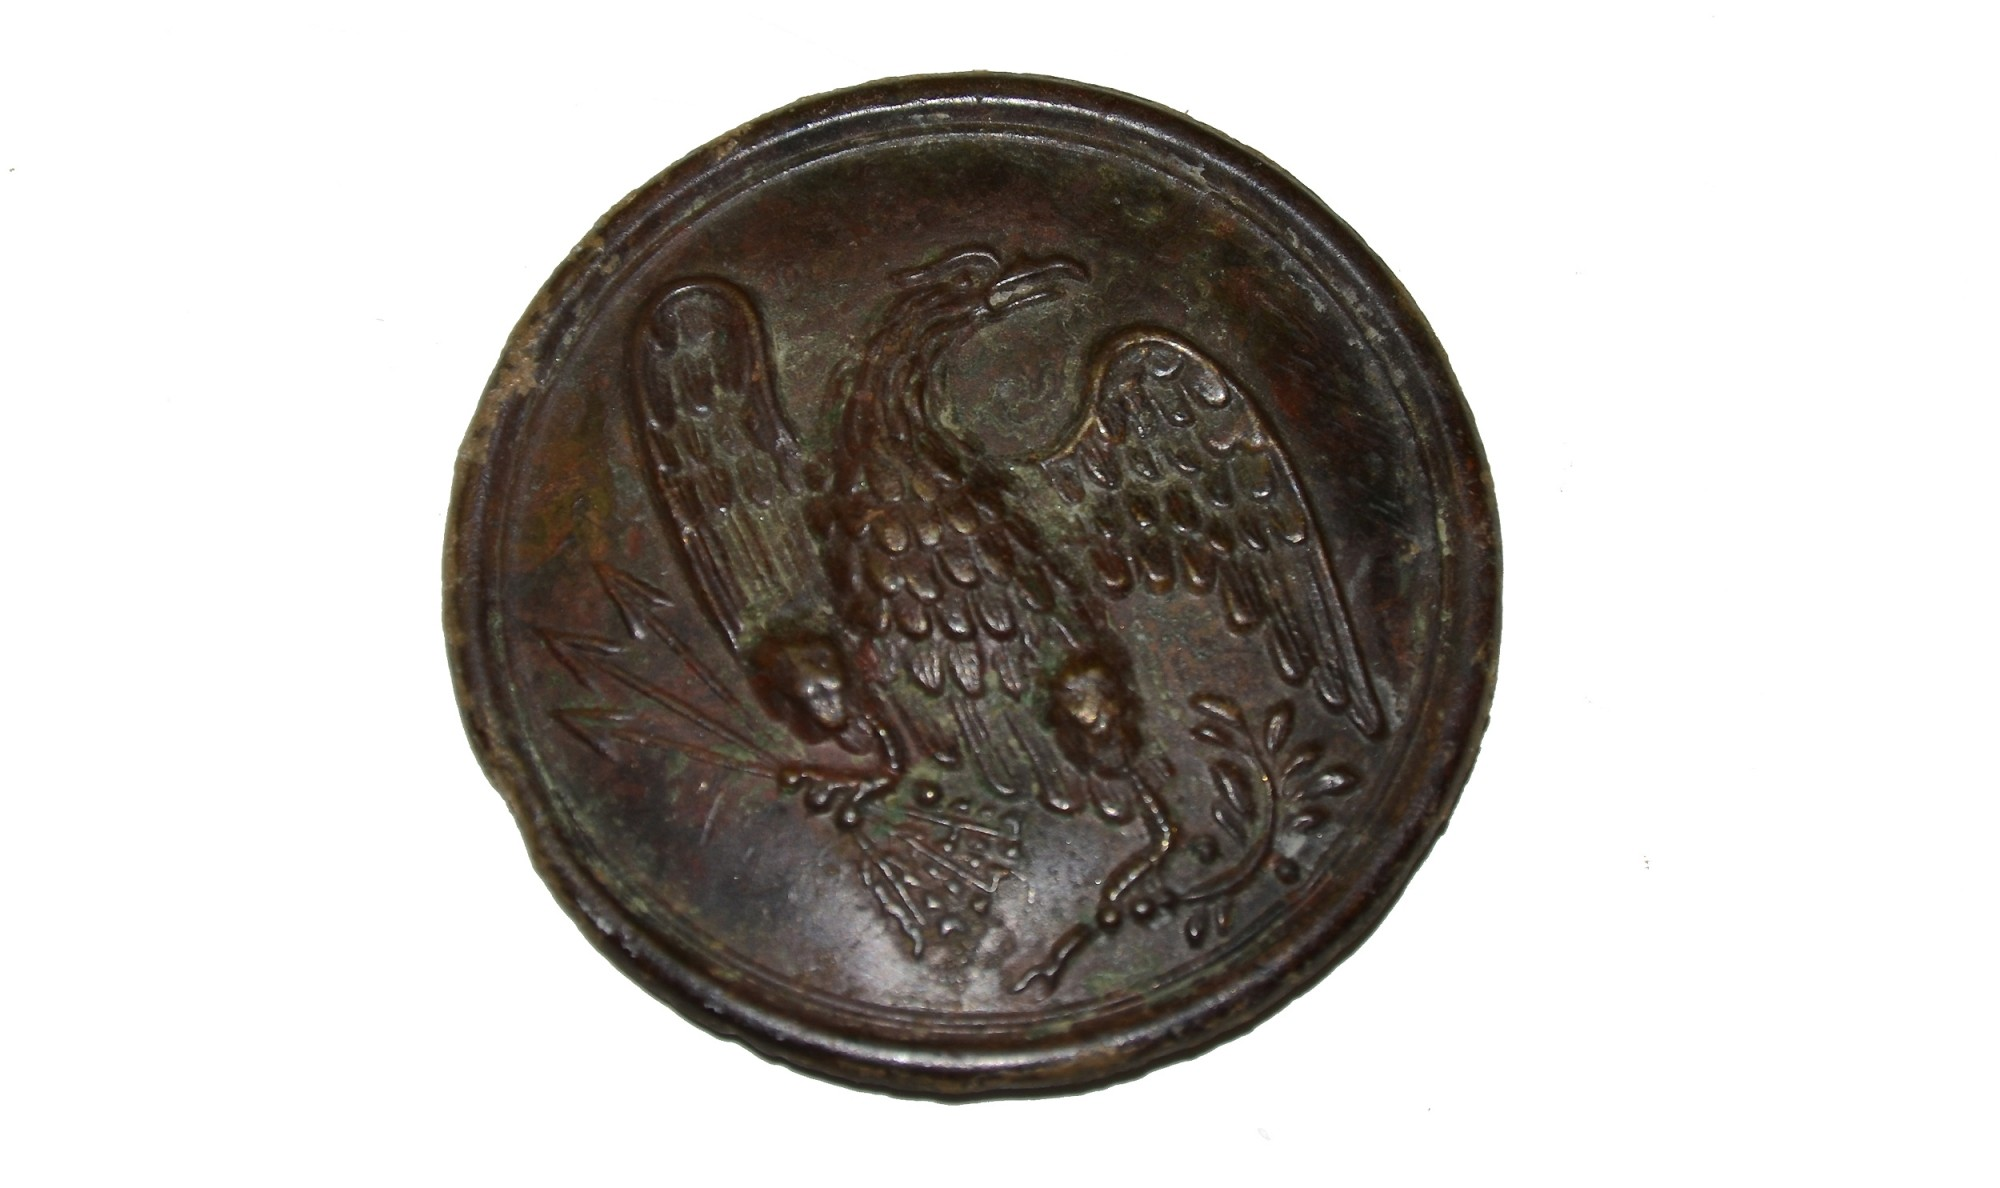 EAGLE BREAST PLATE RECOVERED AT MONOCACY, MARYLAND